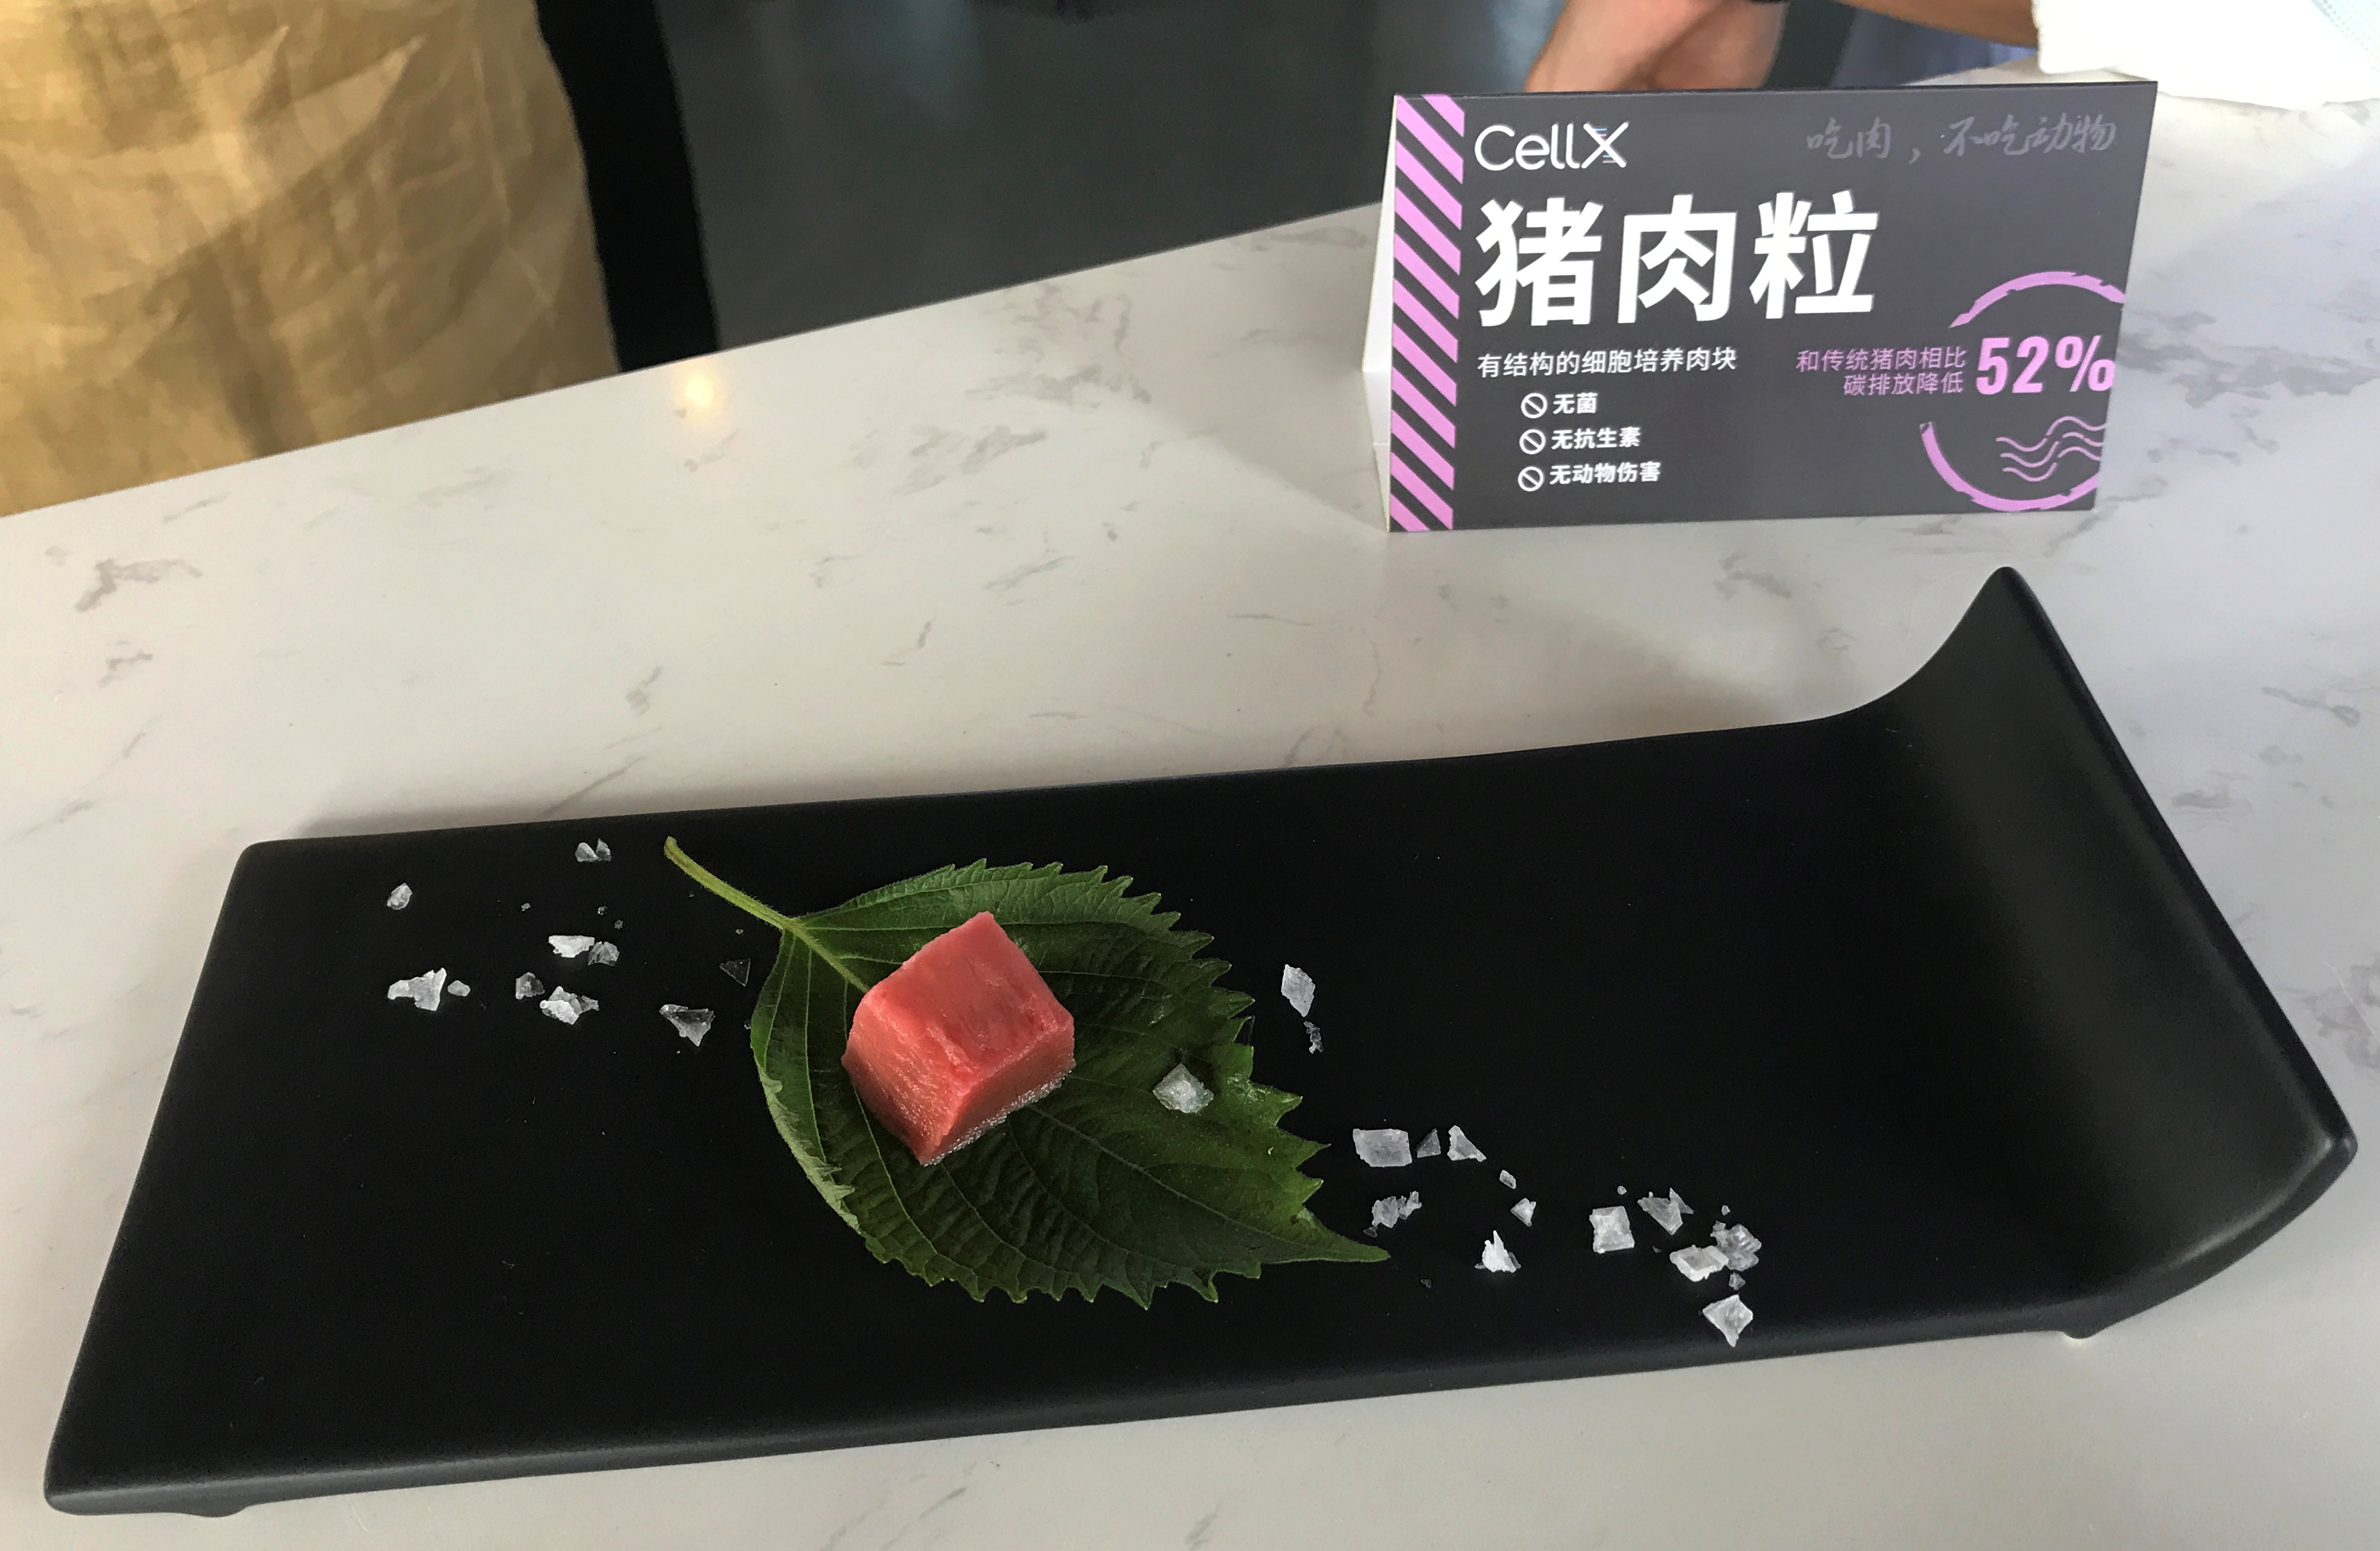 A piece of pork meat cultivated in a lab is displayed during an event by CellX, a cultivated meat startup, to introduce product prototypes in Shanghai, China September 3, 2021. REUTERS/Emily Chow